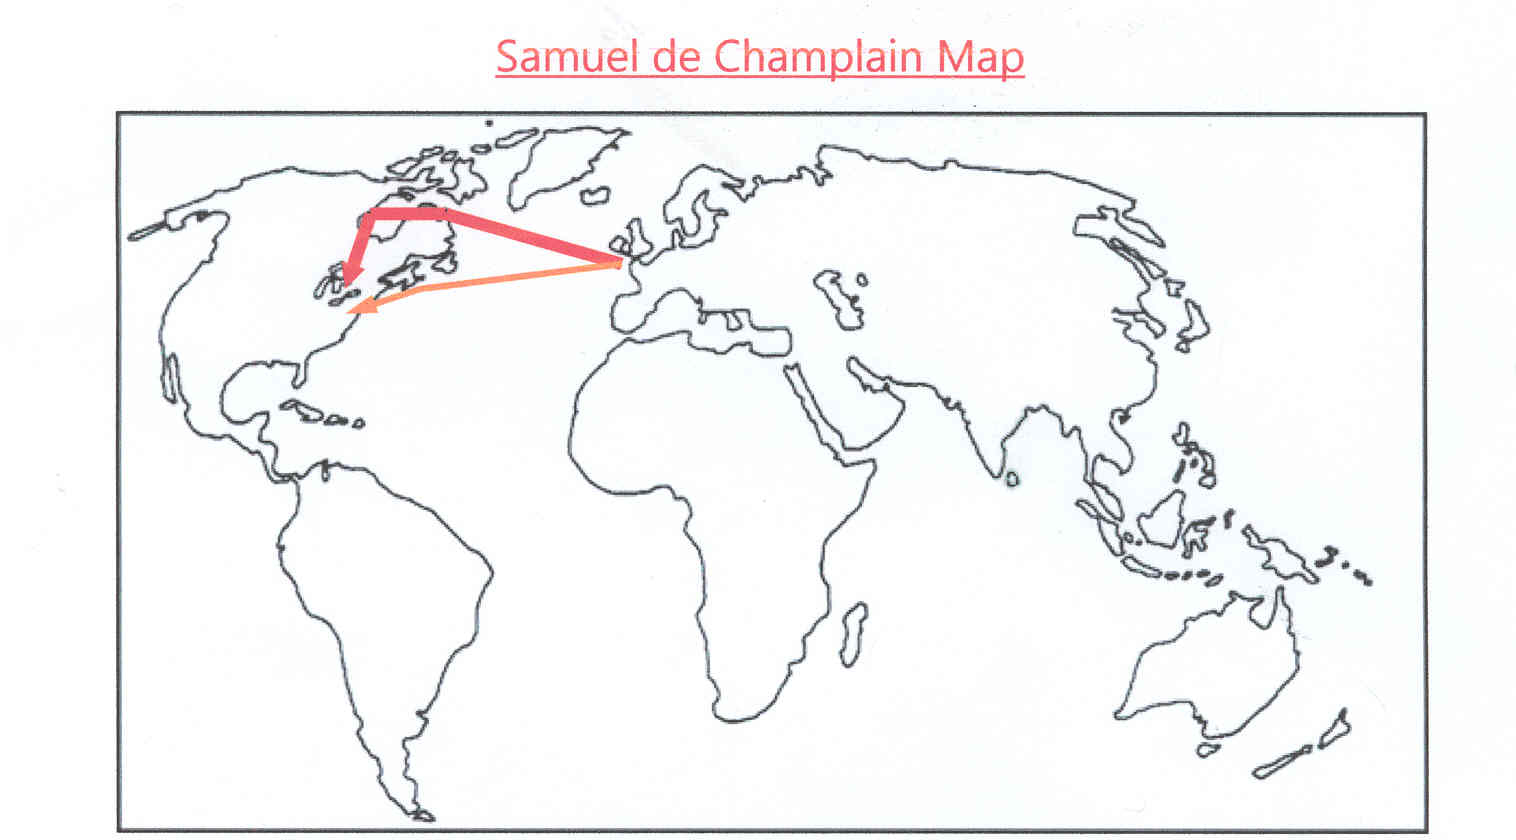 a paper on life and works of samuel de champlain This site has a biography and picture of french explorer samuel de champlain : samuel de champlain this site: discovery of america champlain, samuel de, french navigator born in brouage in early life he was in the cavalry of brittany, and was with his uncle, pilot-general of the.